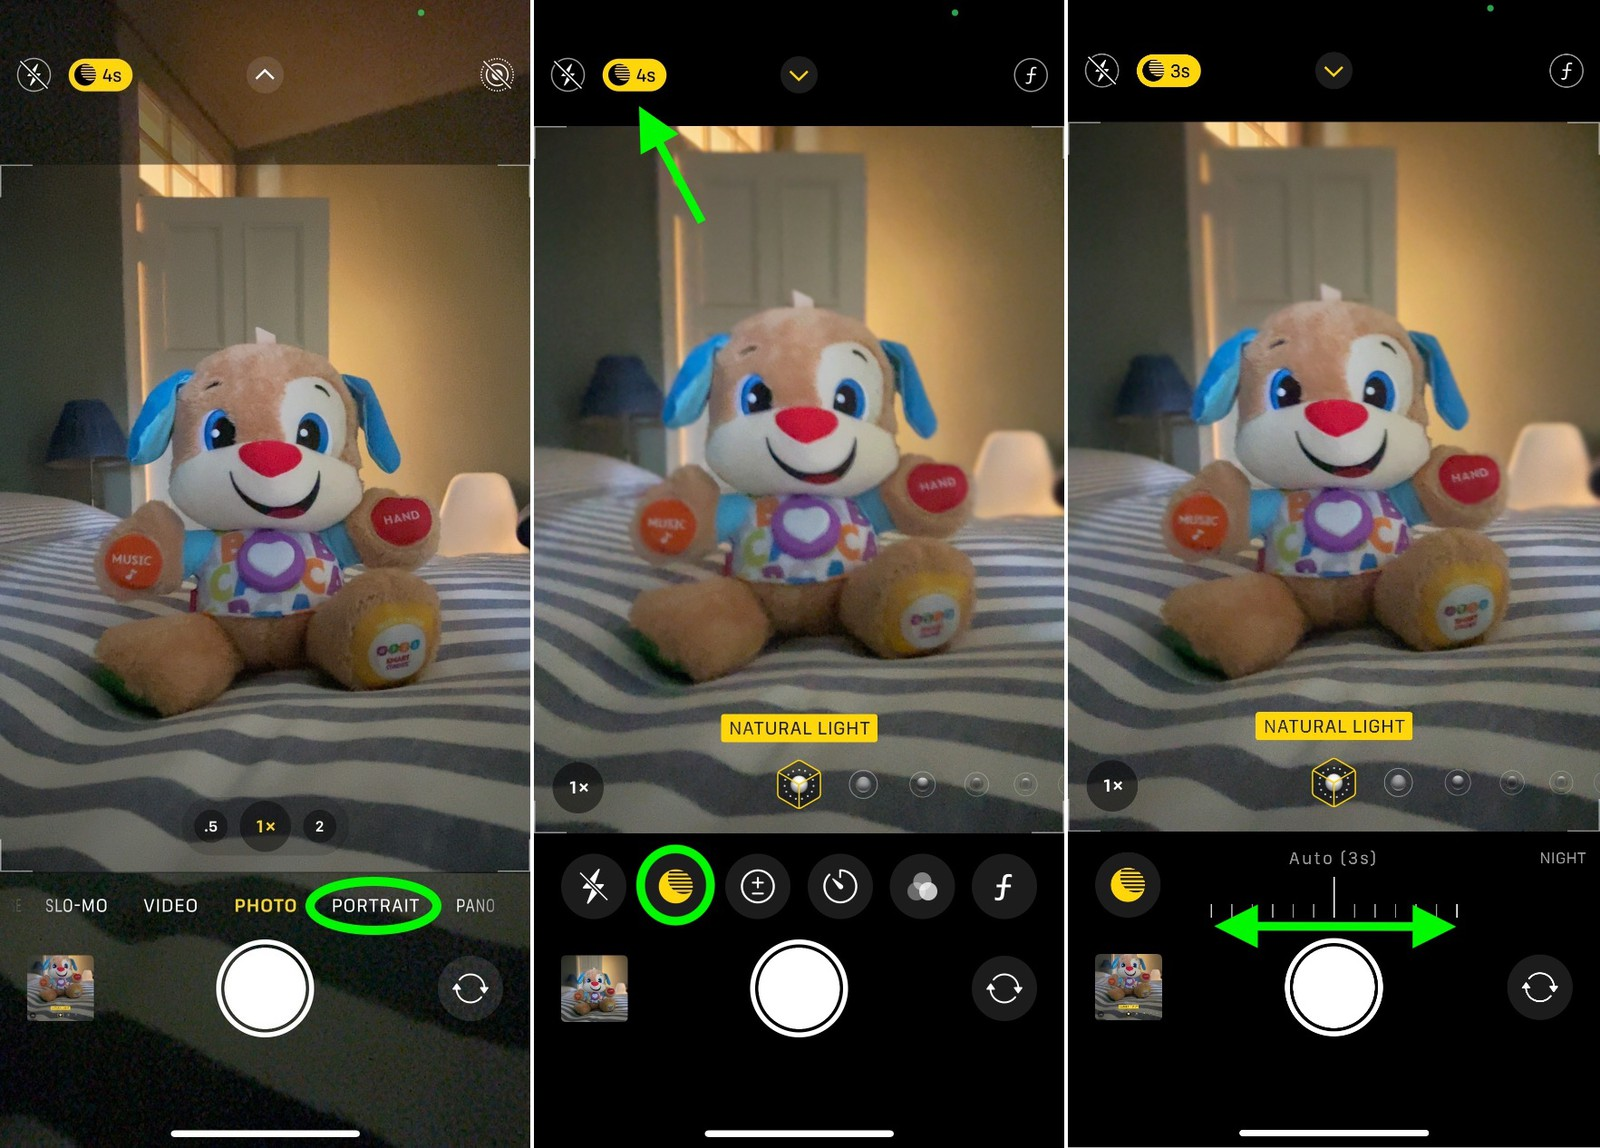 use night mode with portrait photo on iPhone 12 Pro